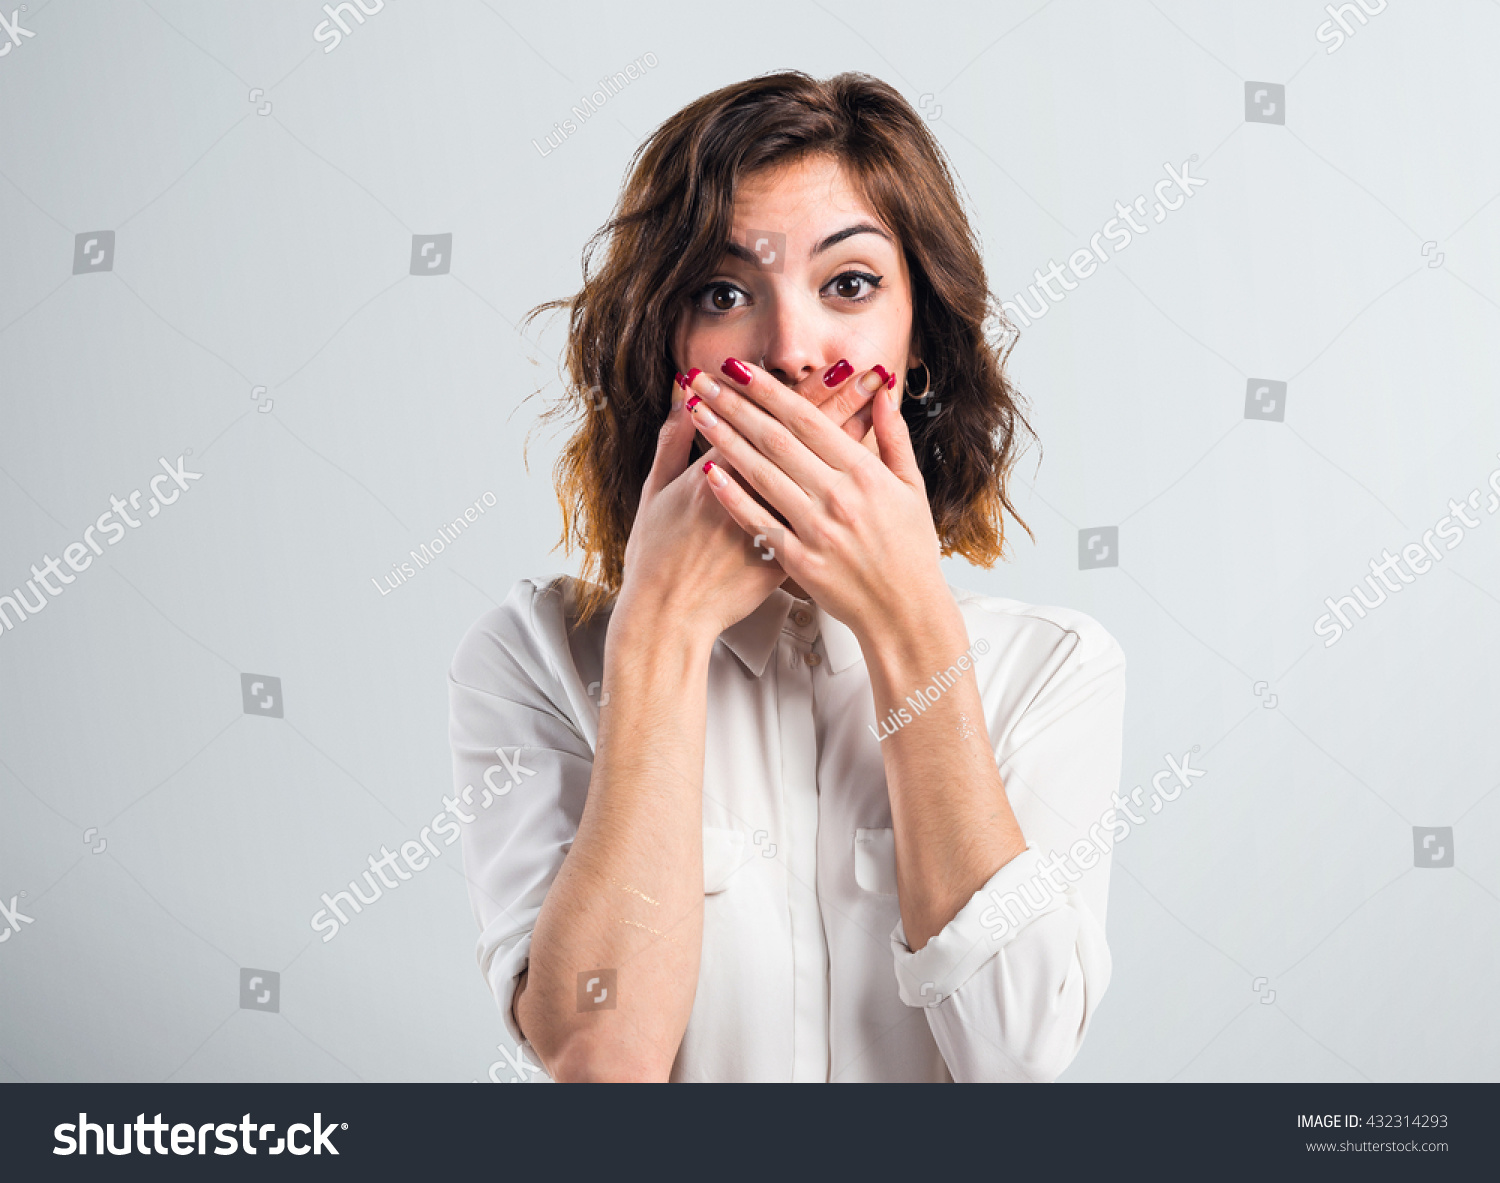 Pretty girl covering her mouth over grey background #432314293